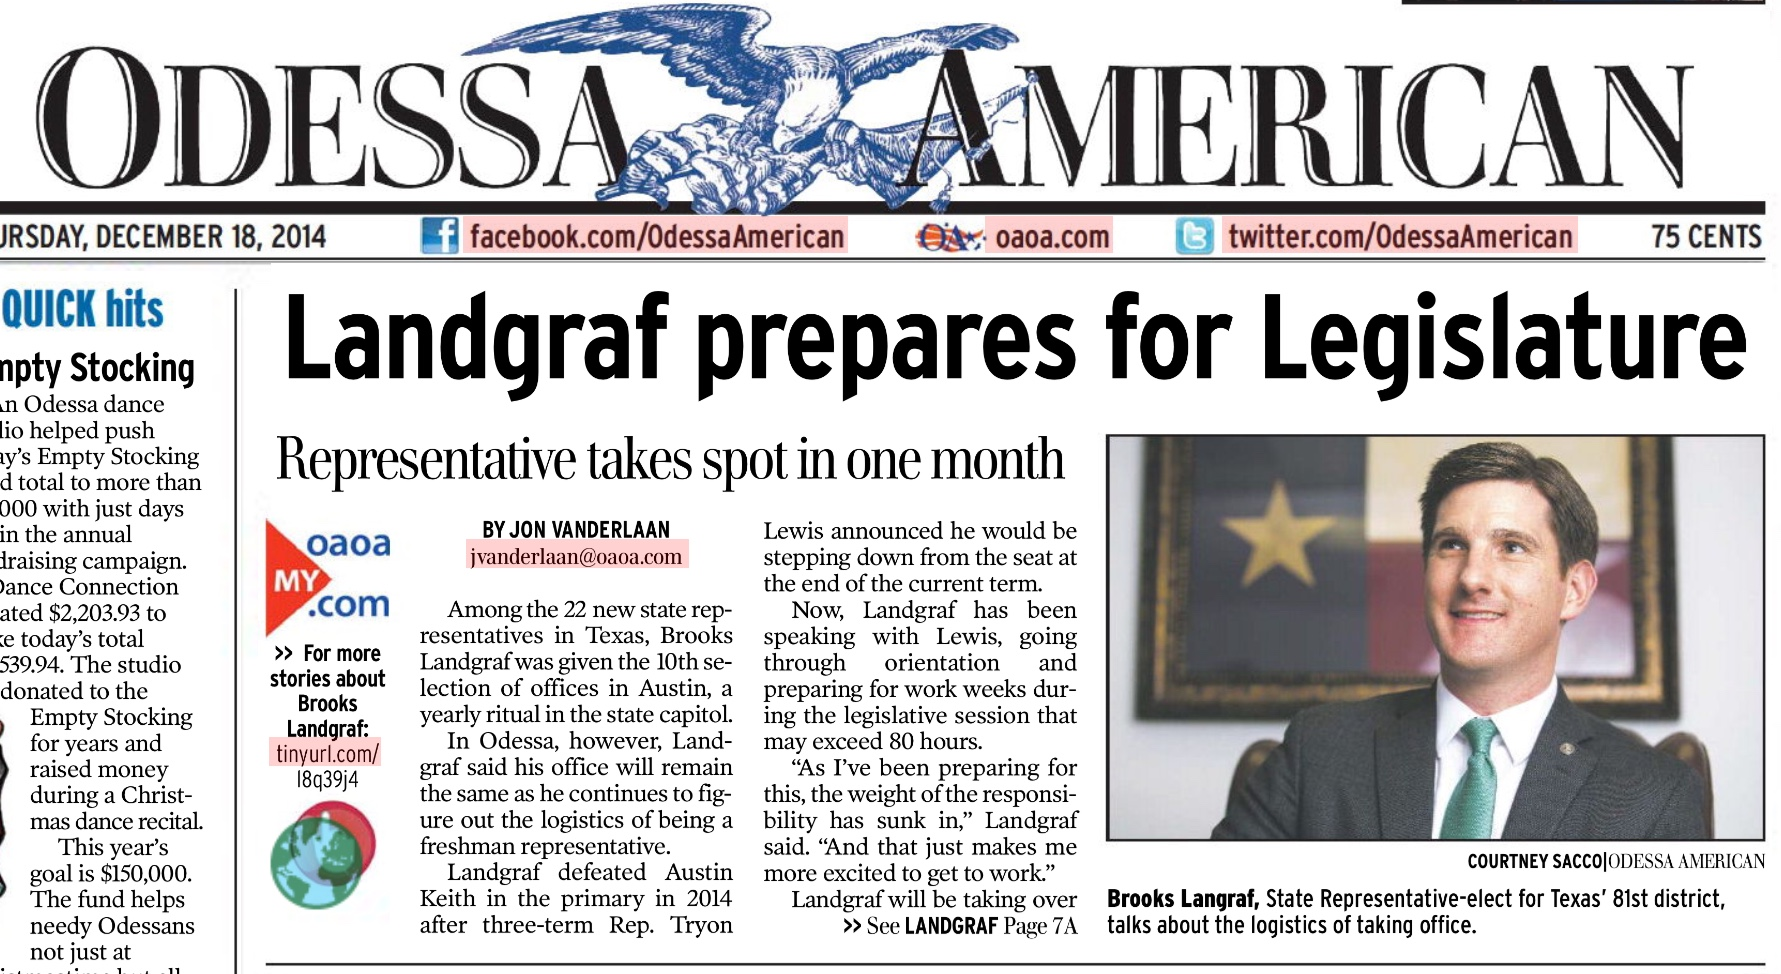 Landgraf_prepares_for_legislature.jpg